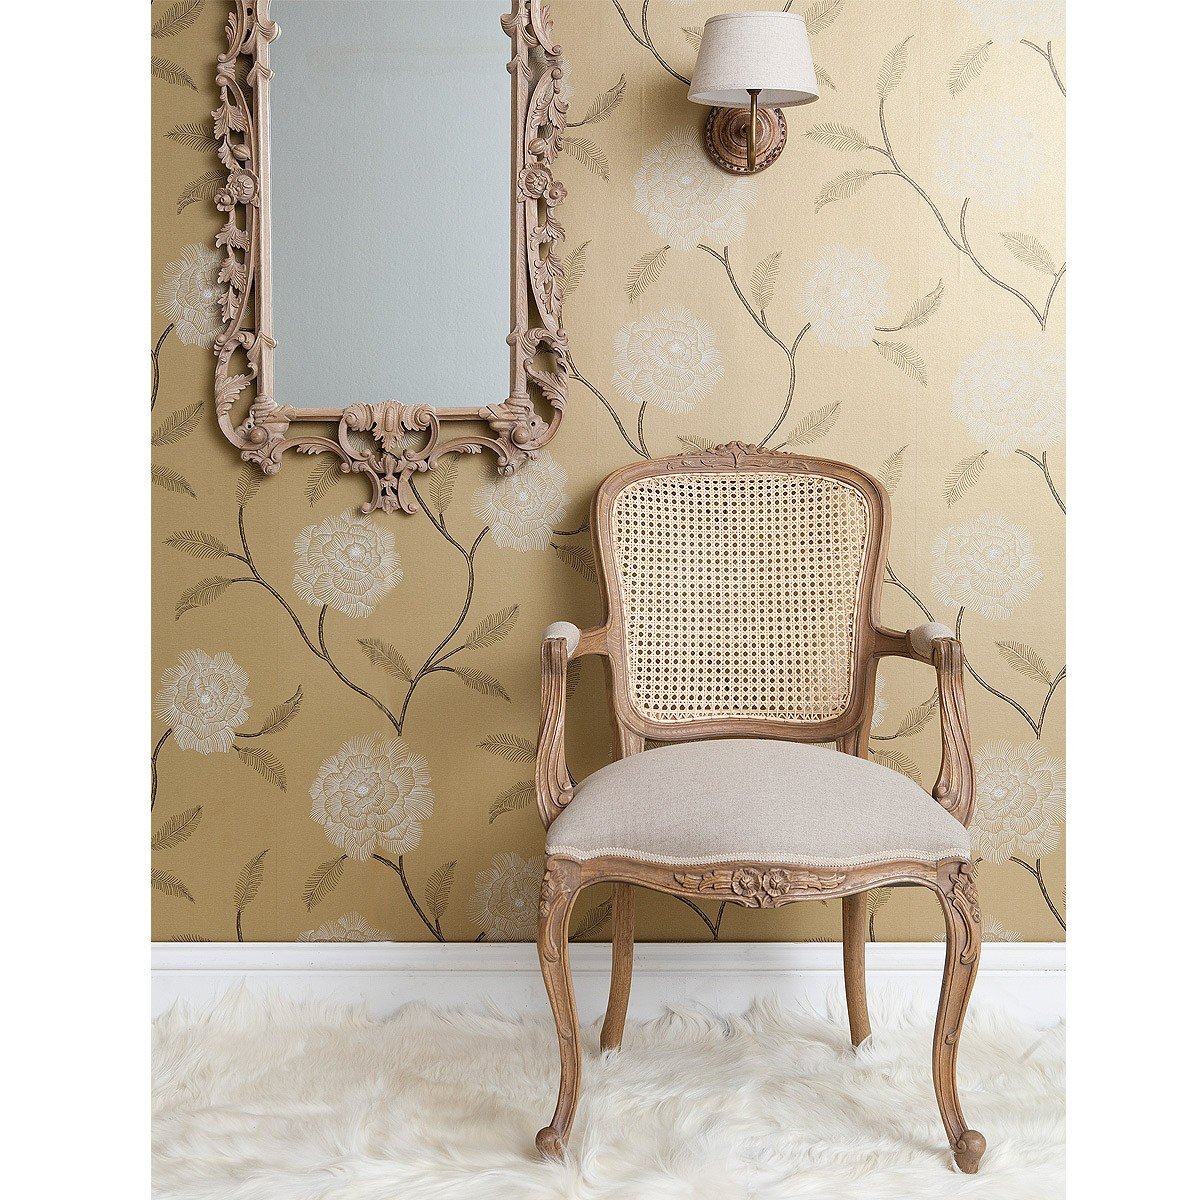 Antoinette French Sleigh Bedroom Armchair: French Carved Chairs And Armchairs